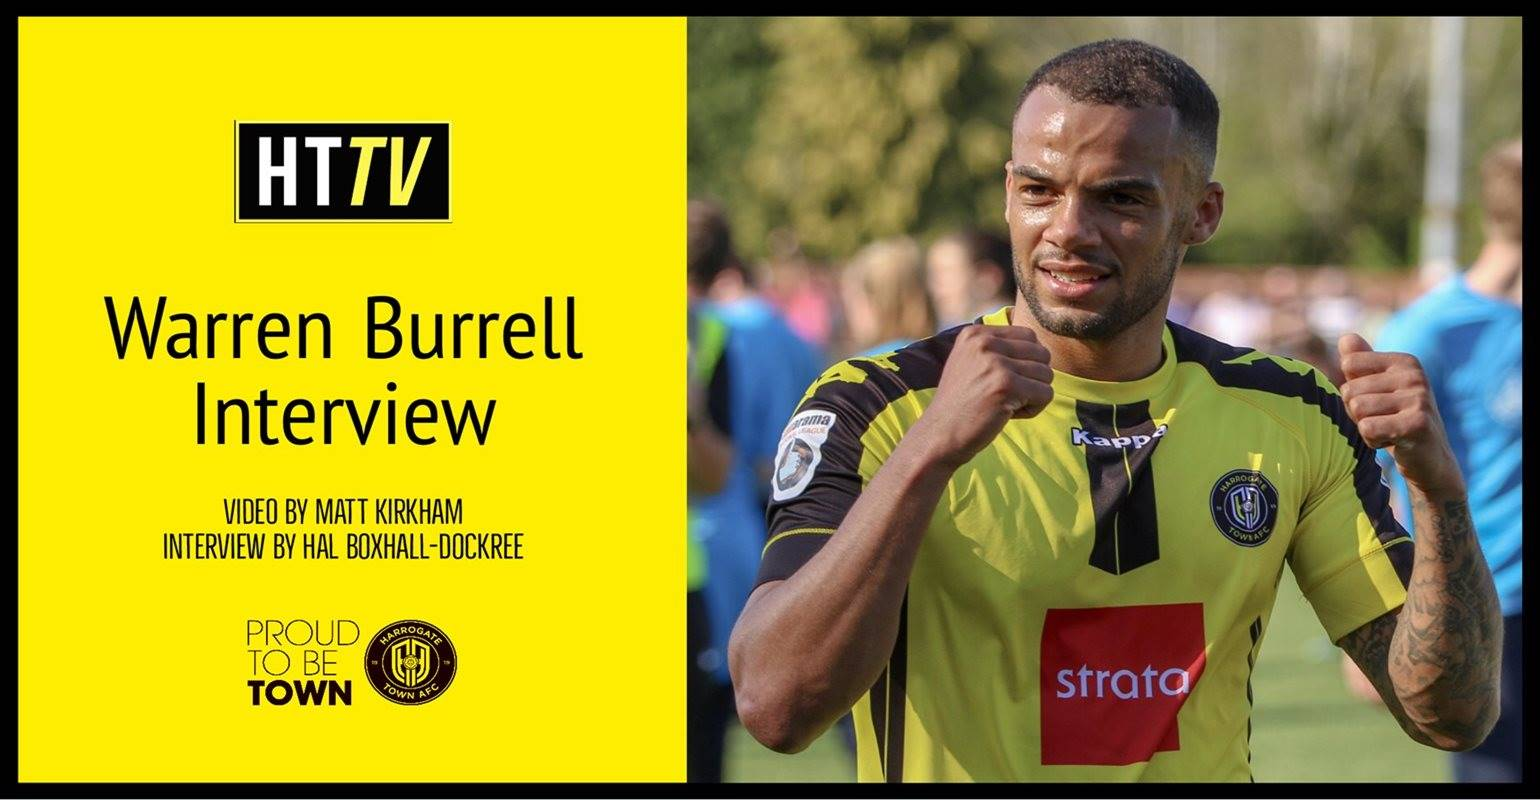 HTTV | Warren Burrell Interview